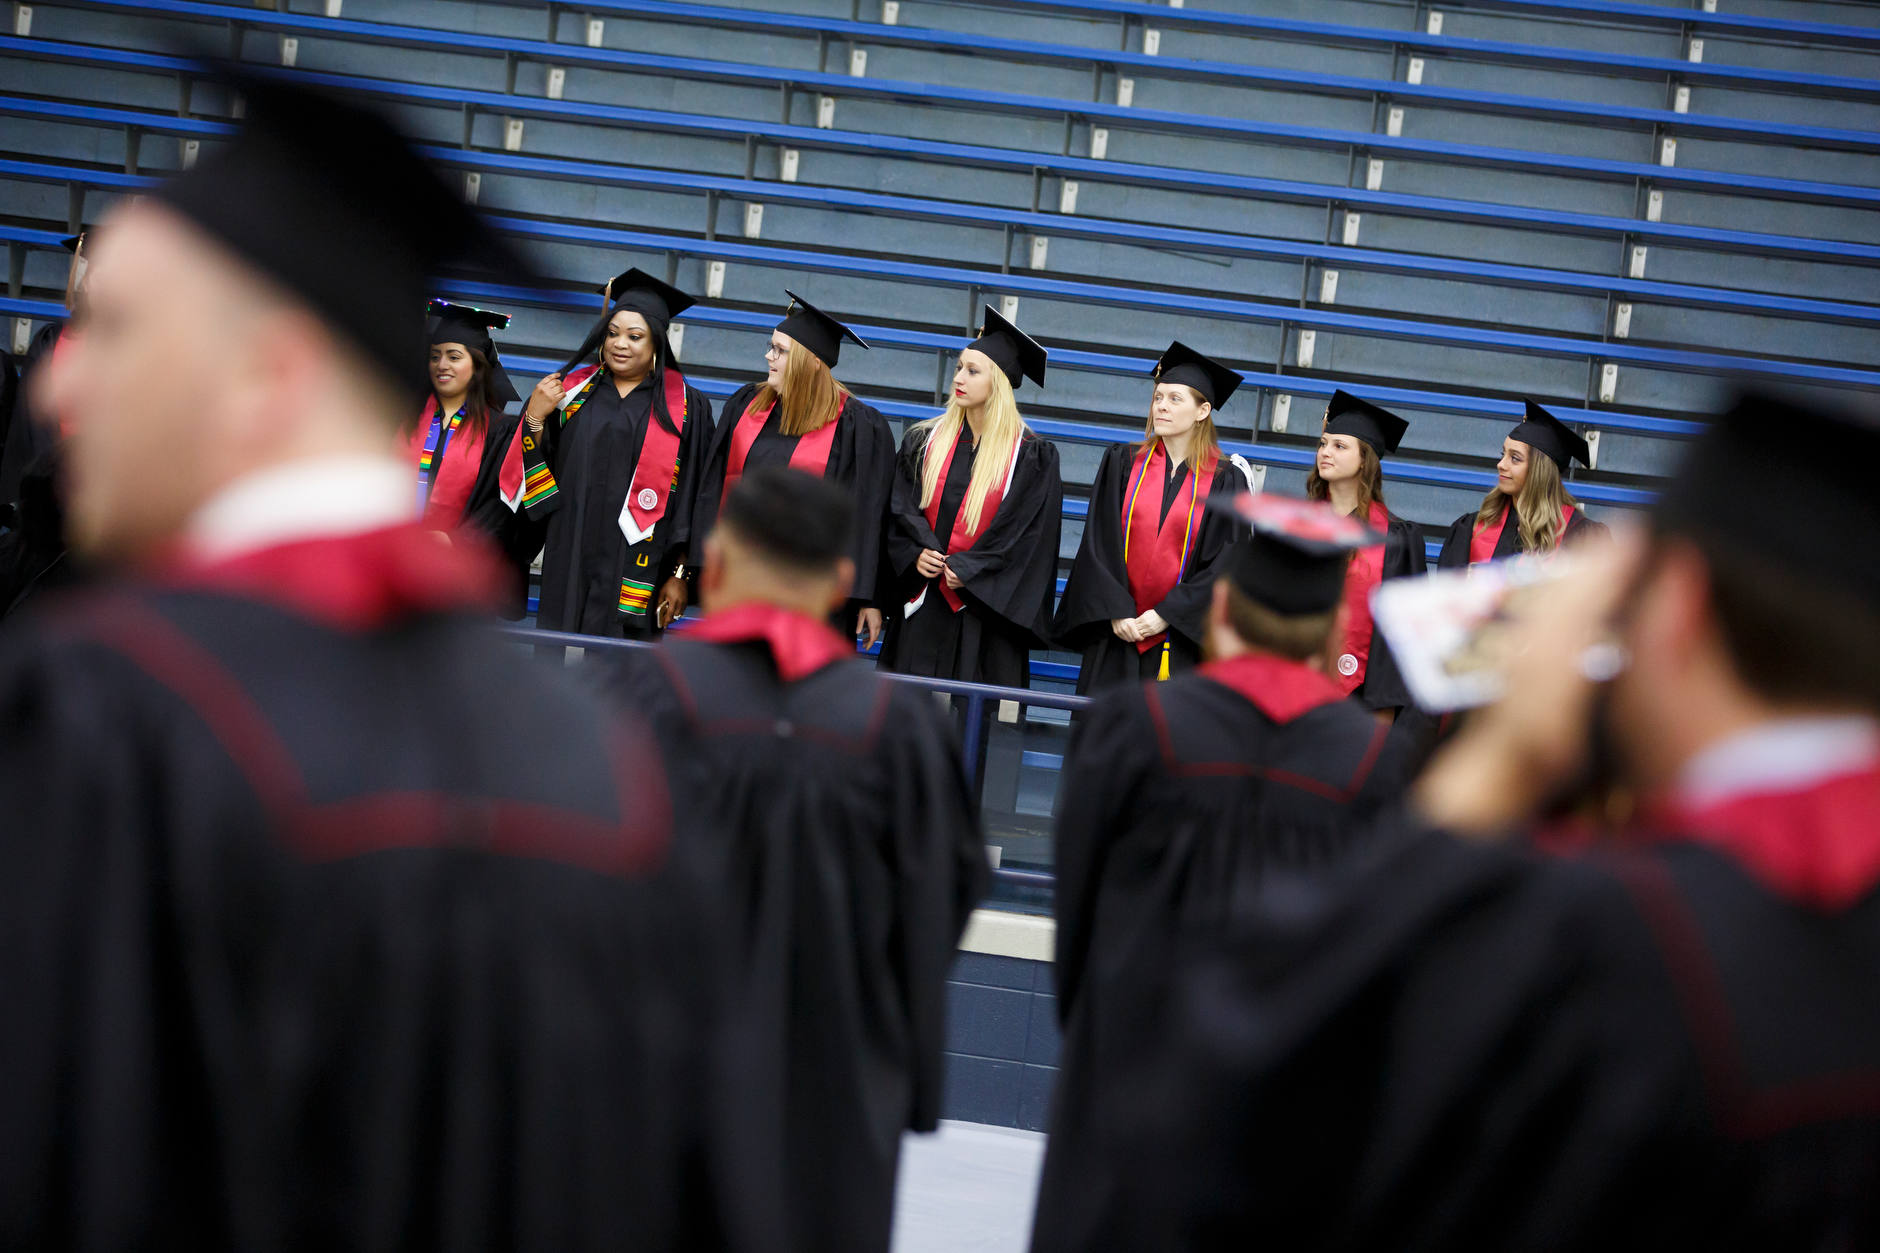 Graduates line up for a group photo before the IU South Bend Commencement at the University of Notre Dame on Tuesday, May 7, 2019. (James Brosher/Indiana University)